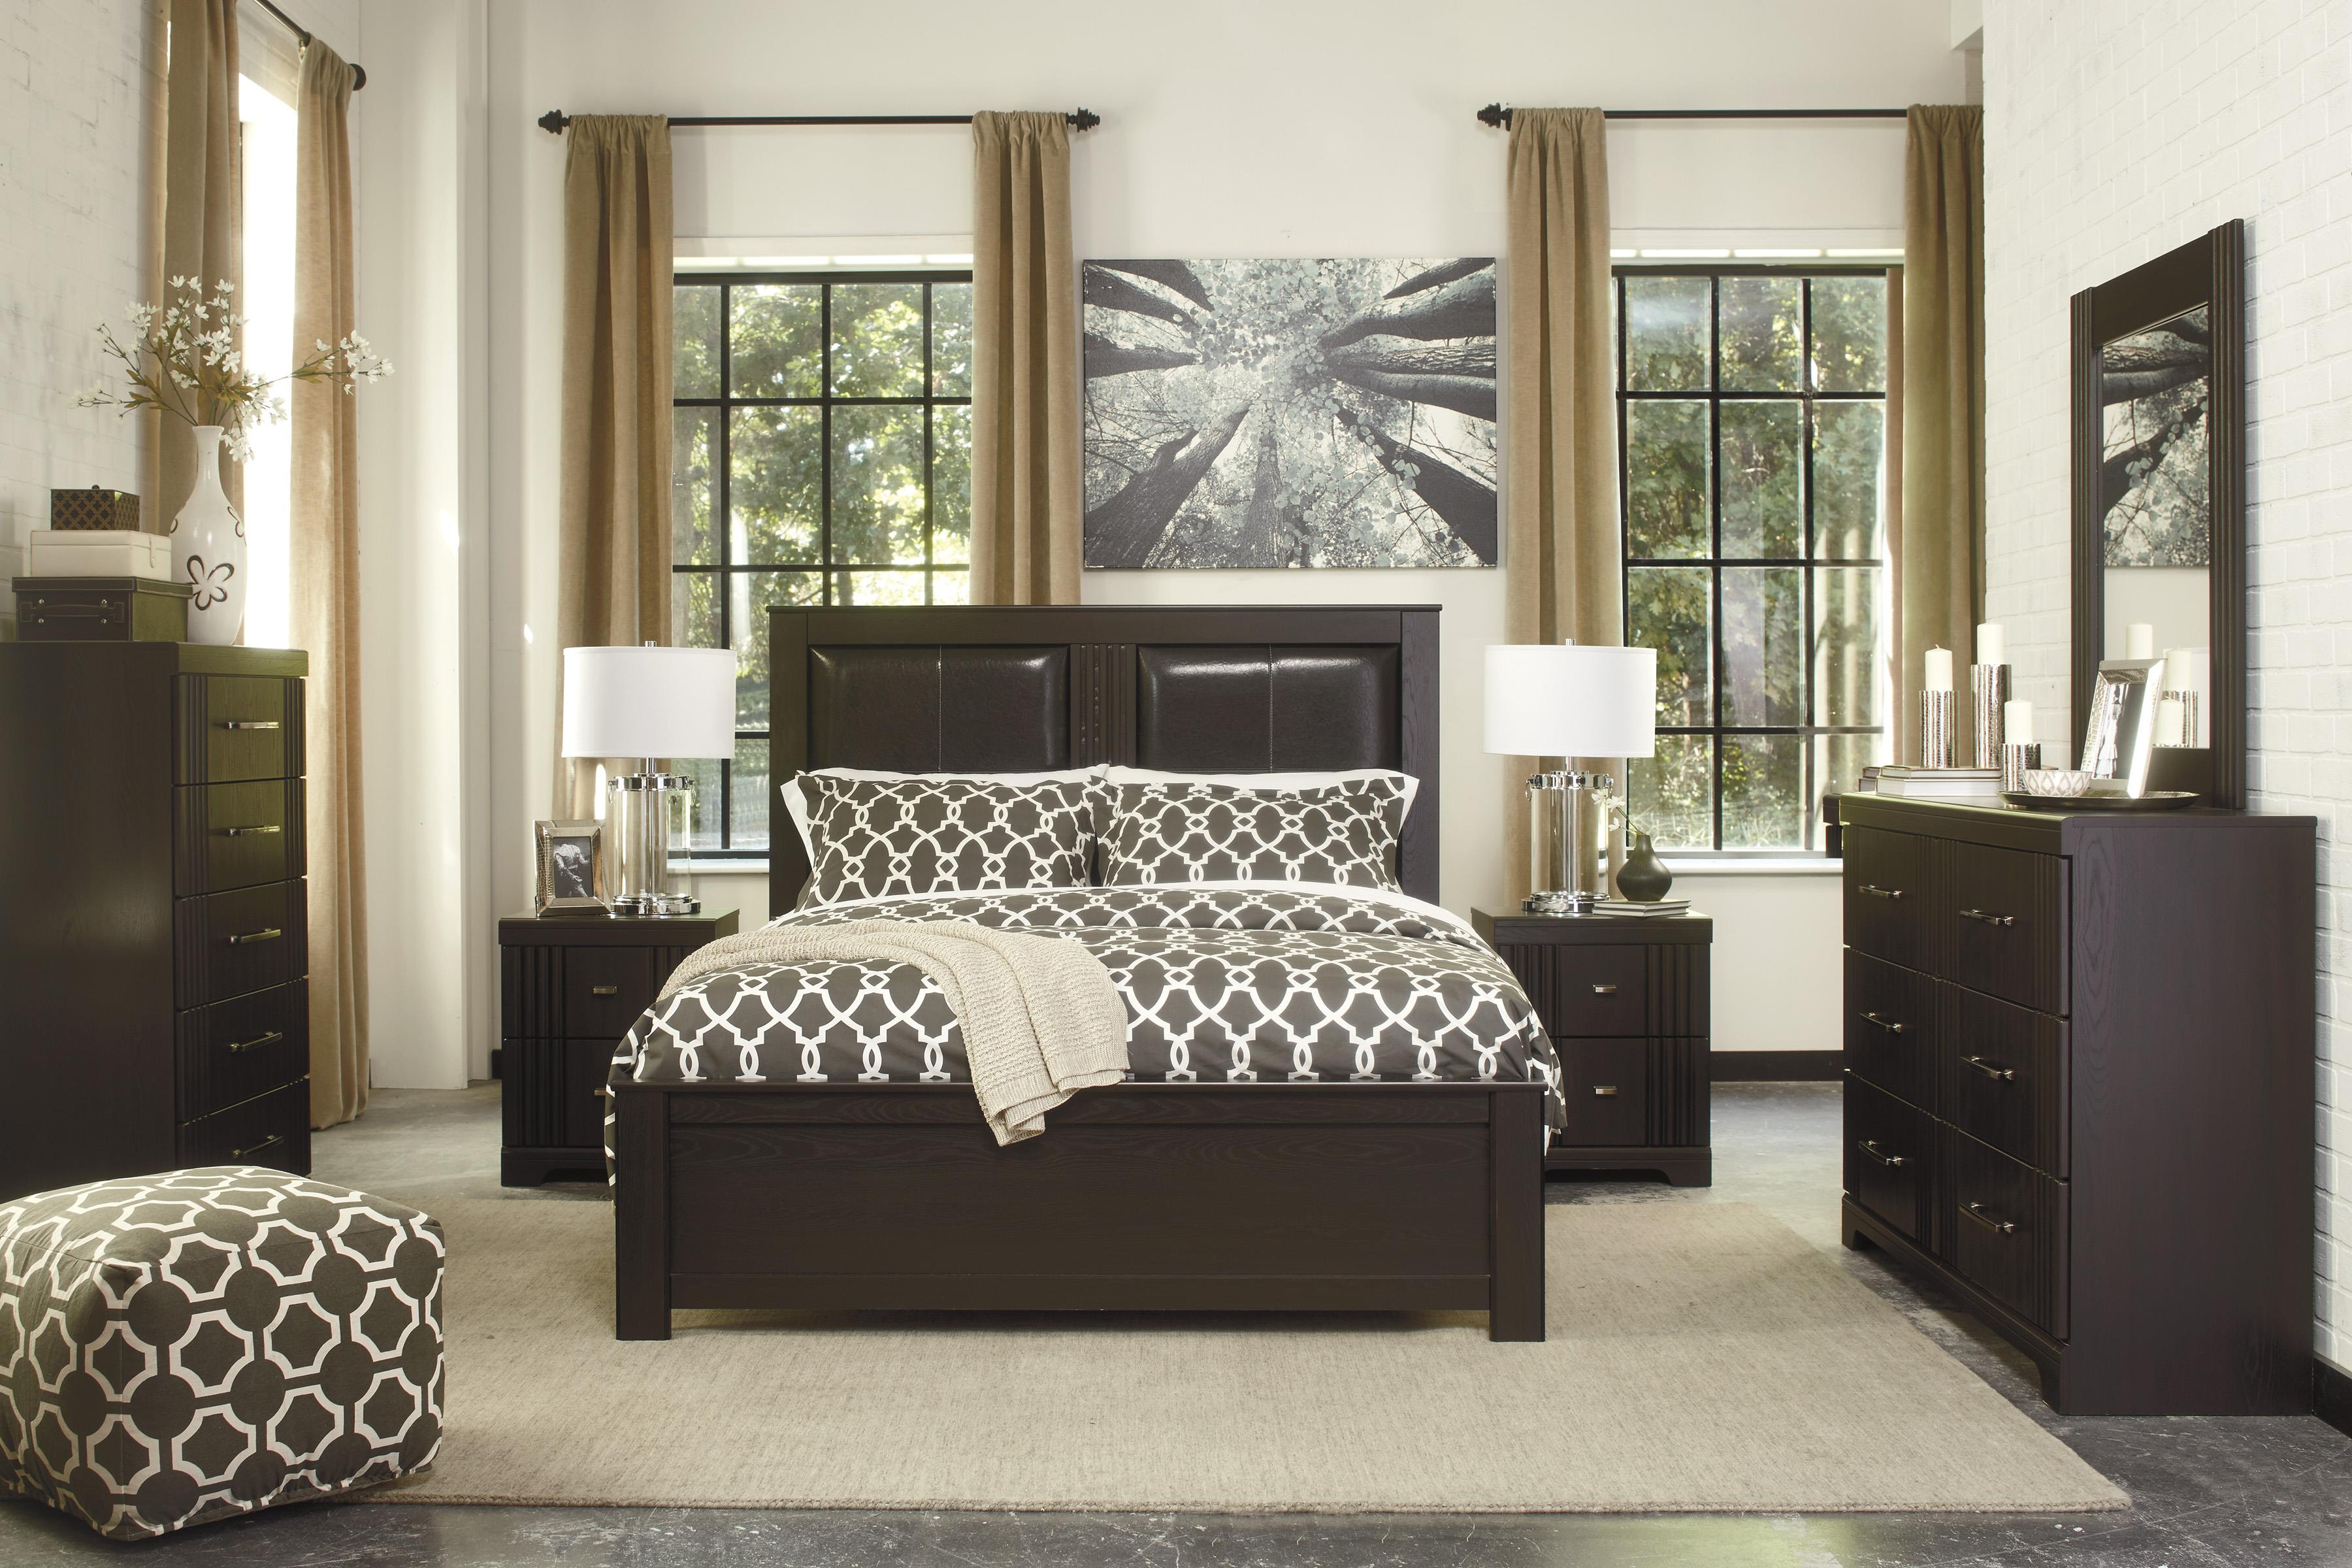 Signature Design by Ashley Tadlyn Queen Bedroom Group - Item Number: B146 Q Bedroom Group 2